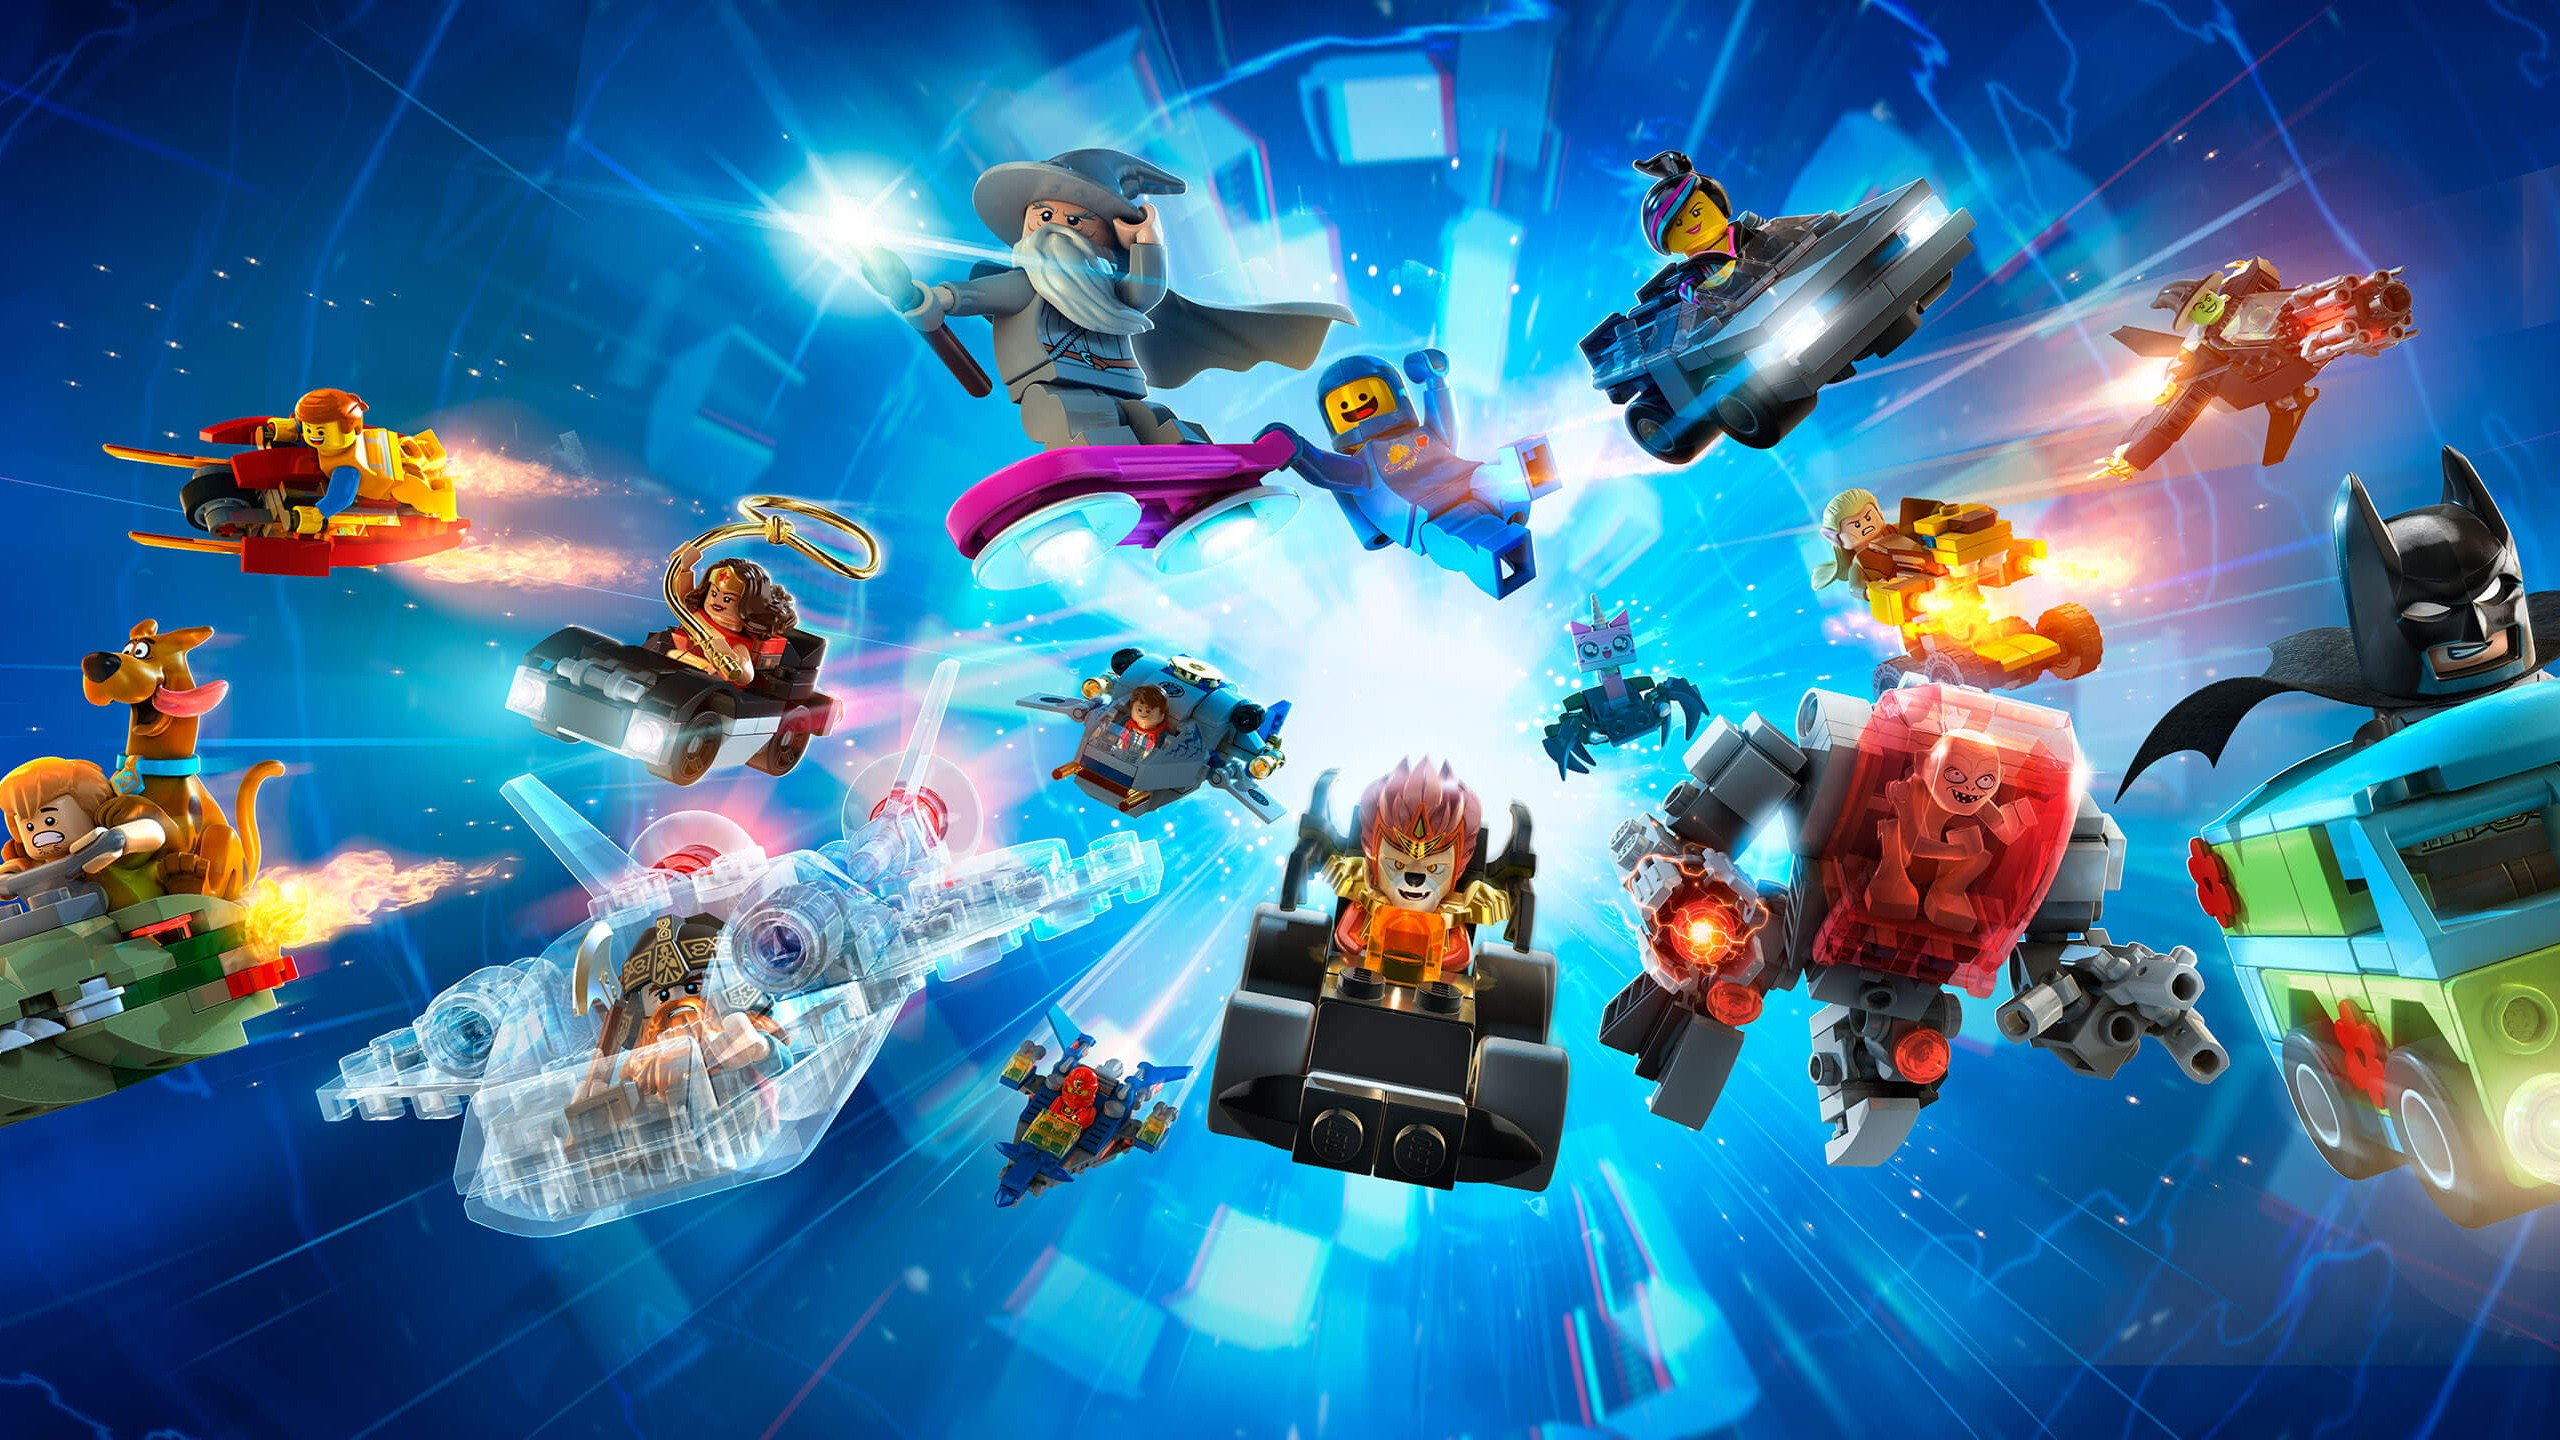 Lego Wallpaper Iphone X Lego Dimensions Game Wallpapers Hd Wallpapers Id 15903